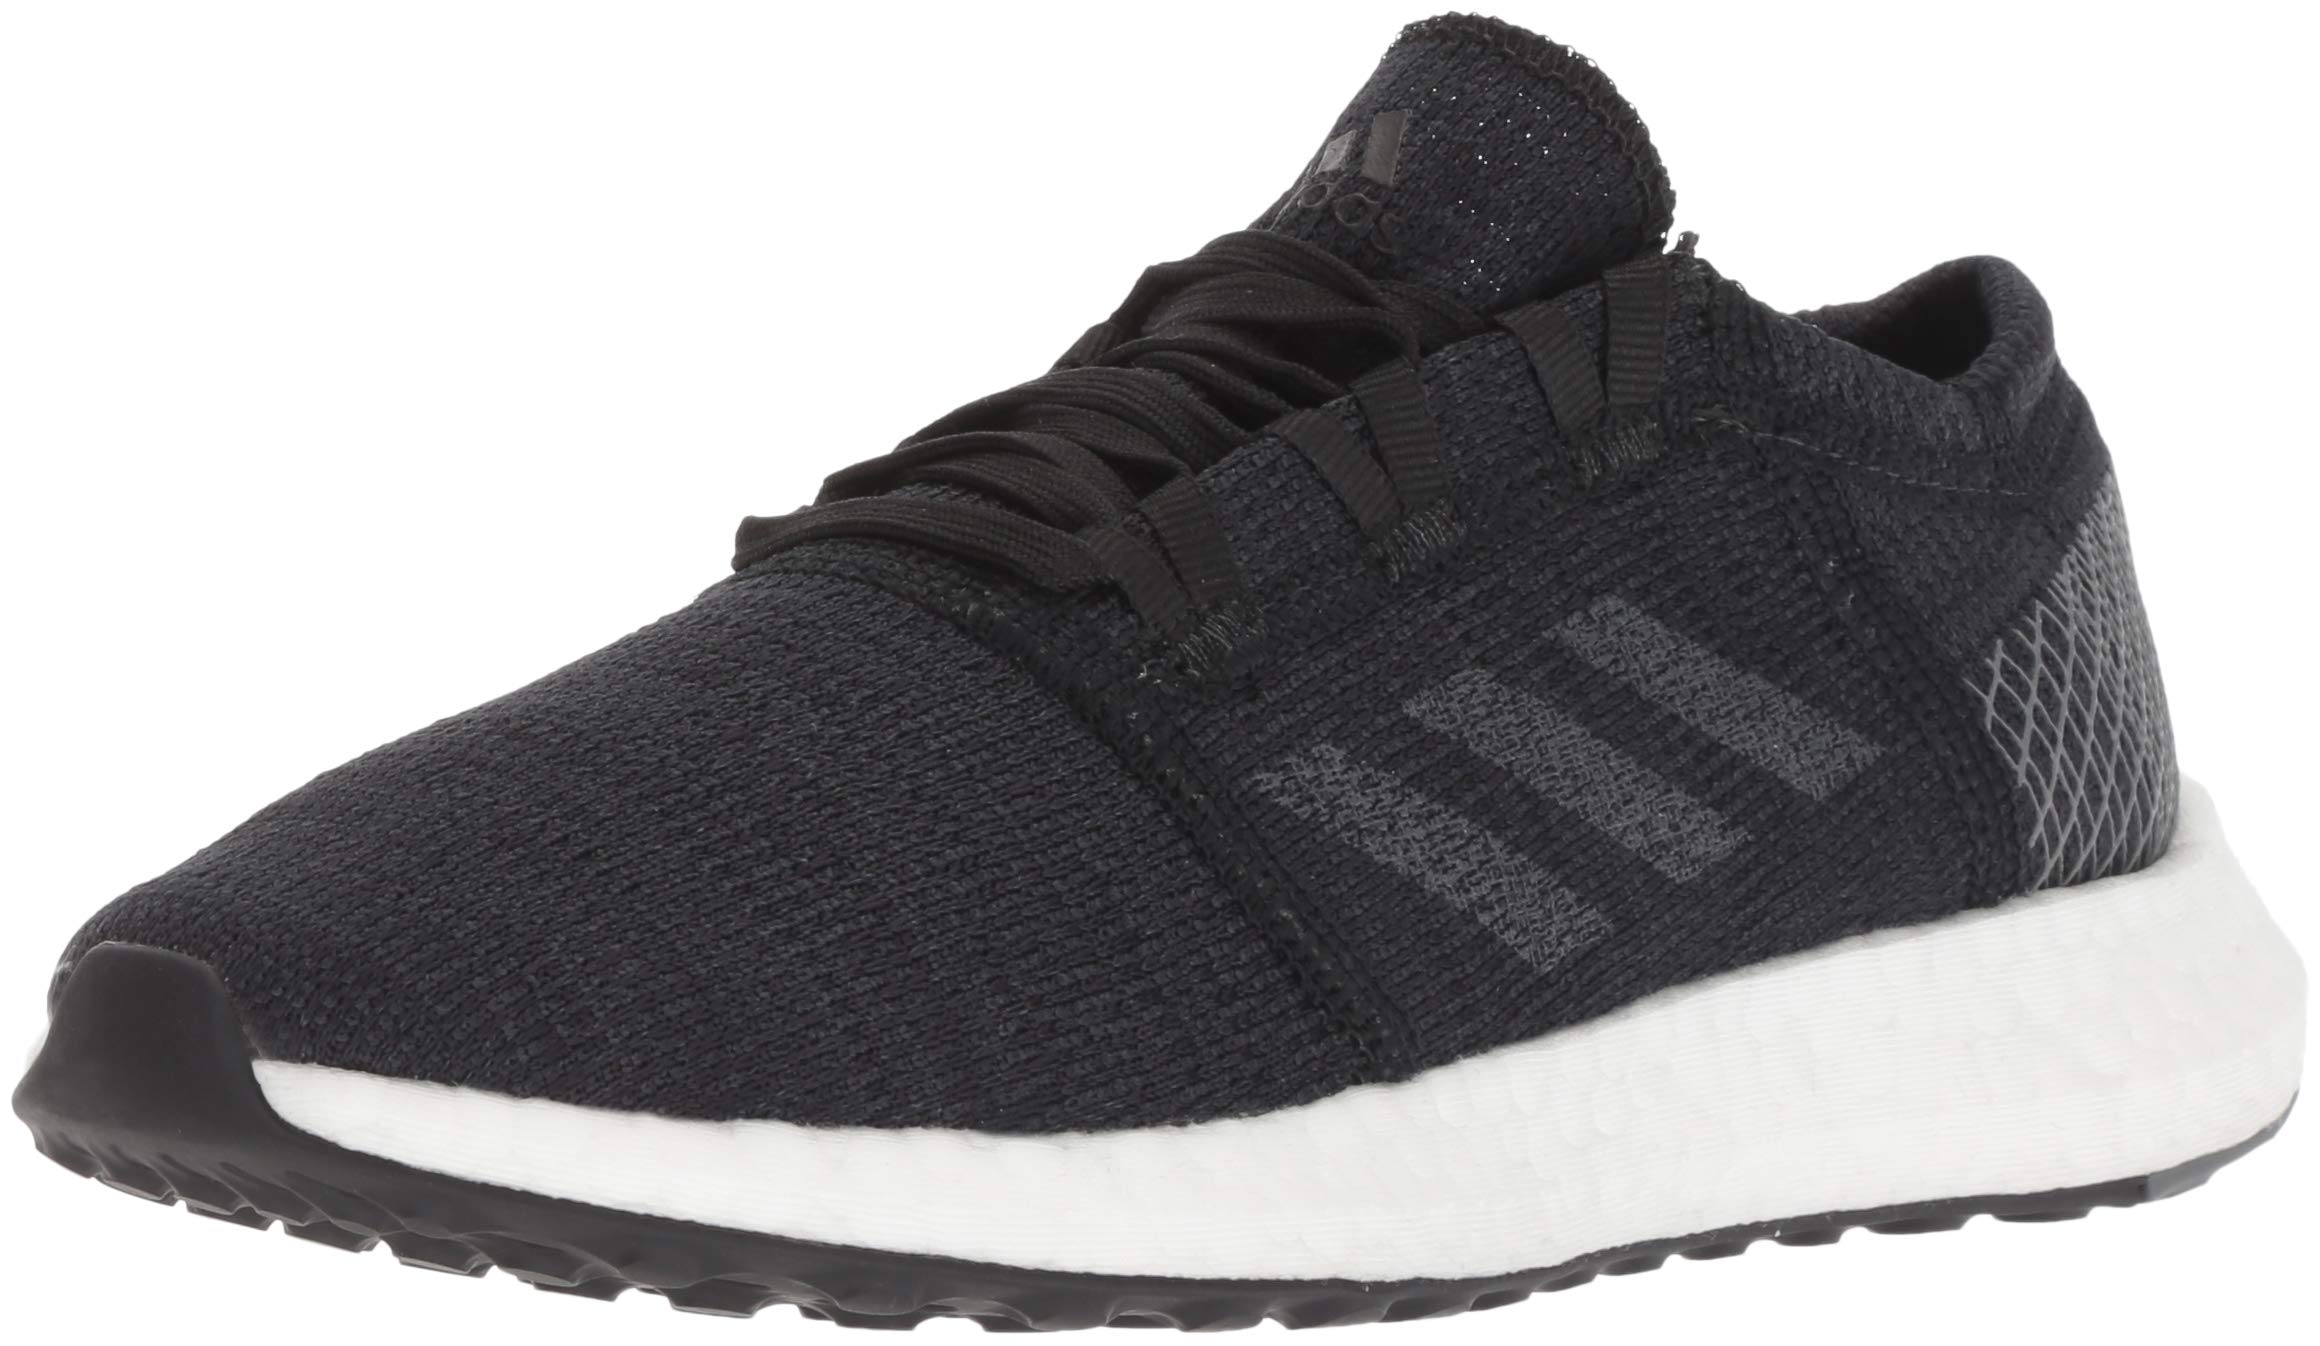 adidas Women's Pureboost Go Running Shoe, Black Grey, 6 M US